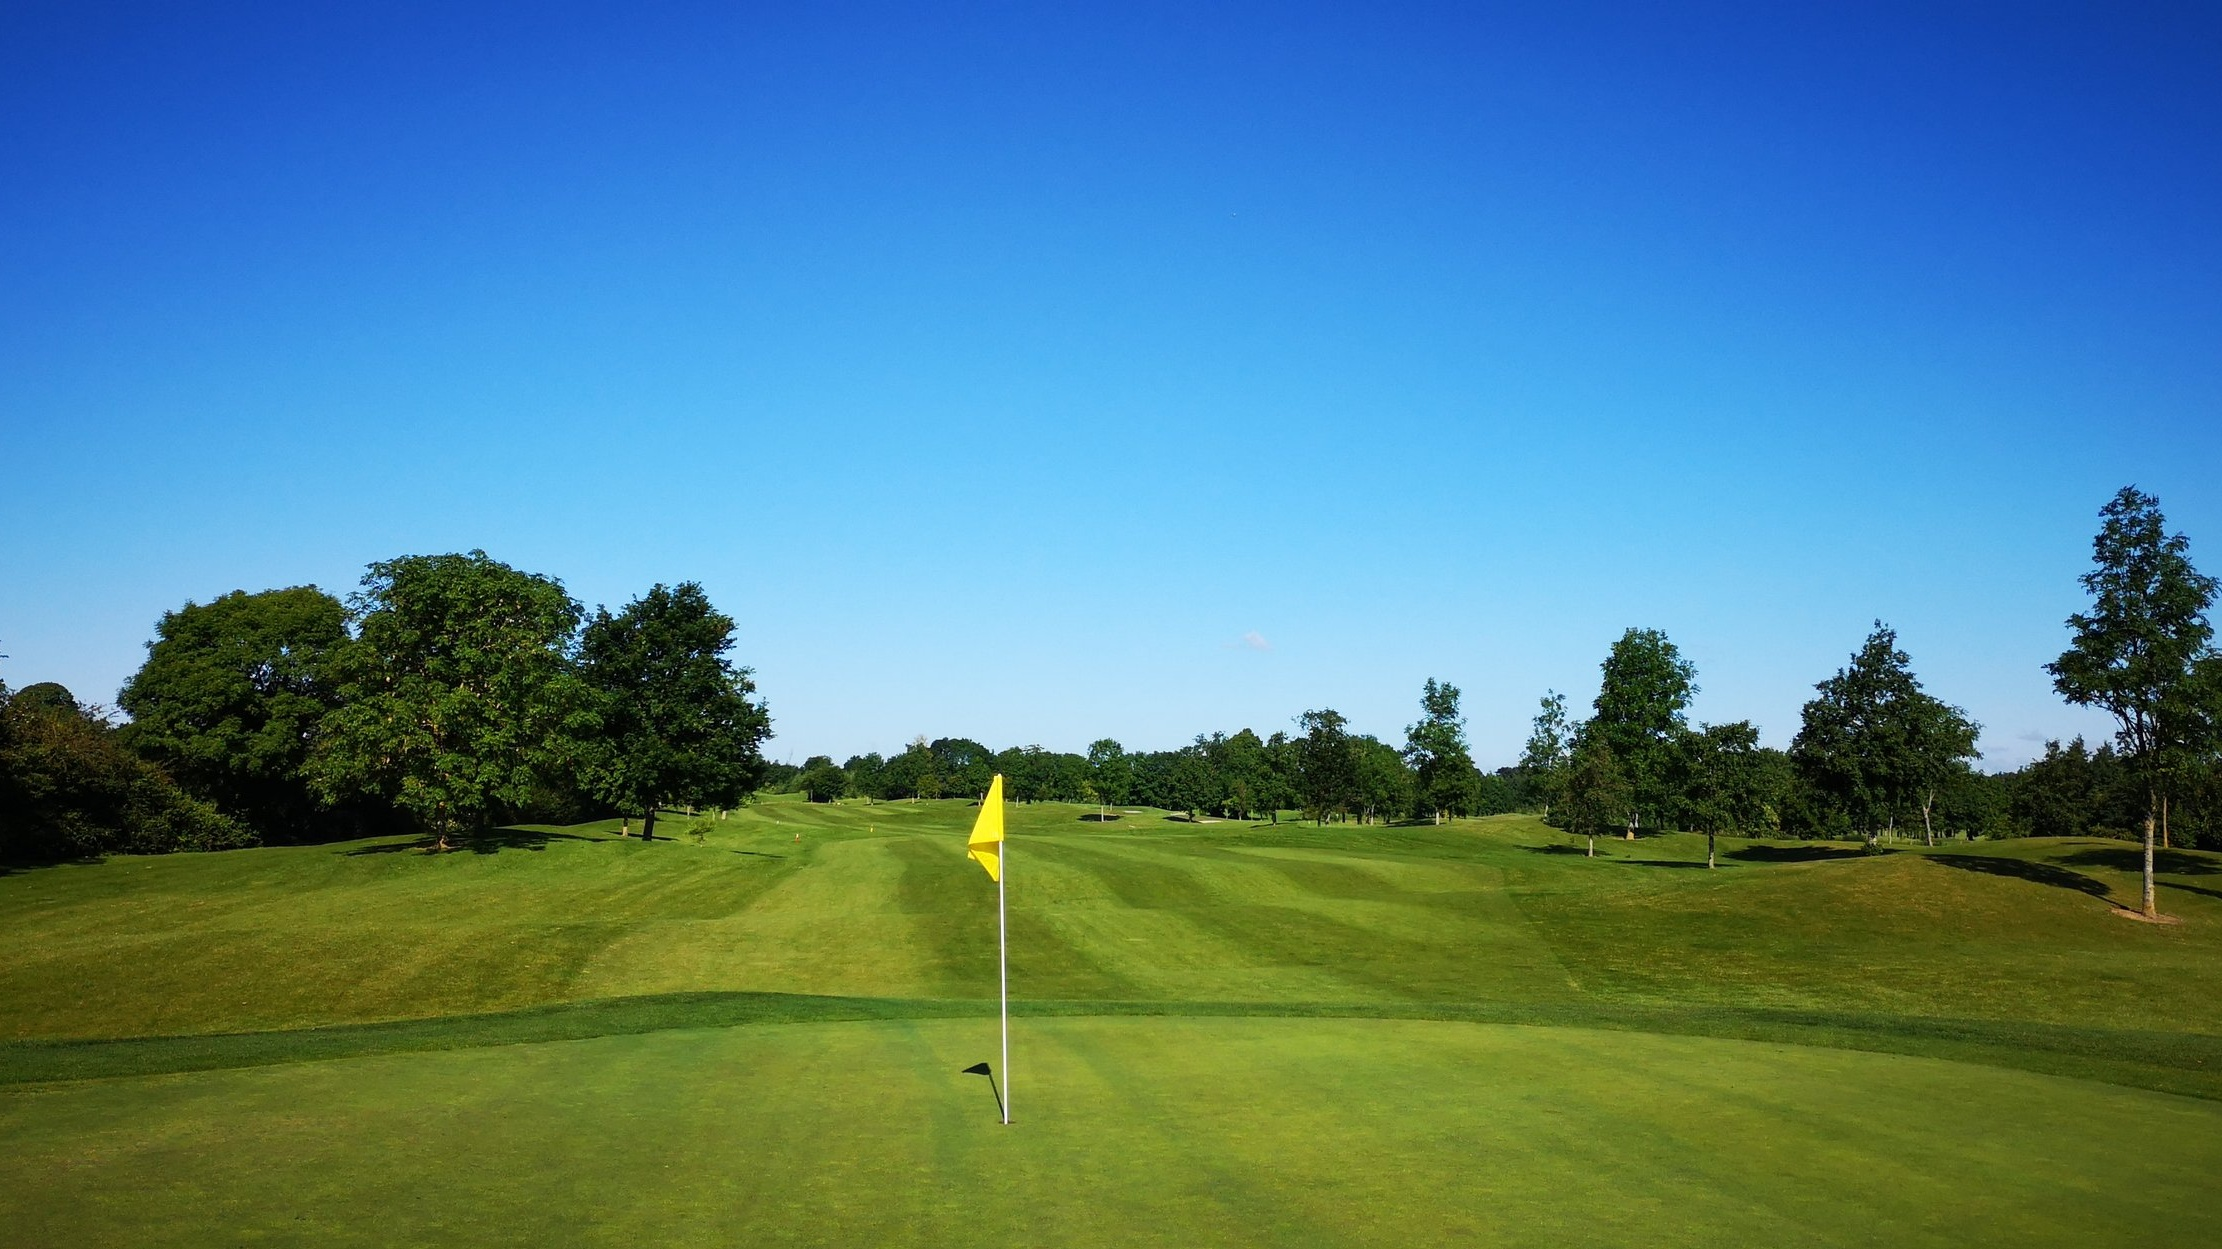 Championship Golf - Roganstown Hotel and Country Club boasts two Championship golf courses, at Roganstown Golf Course and Swords Open Golf Course.